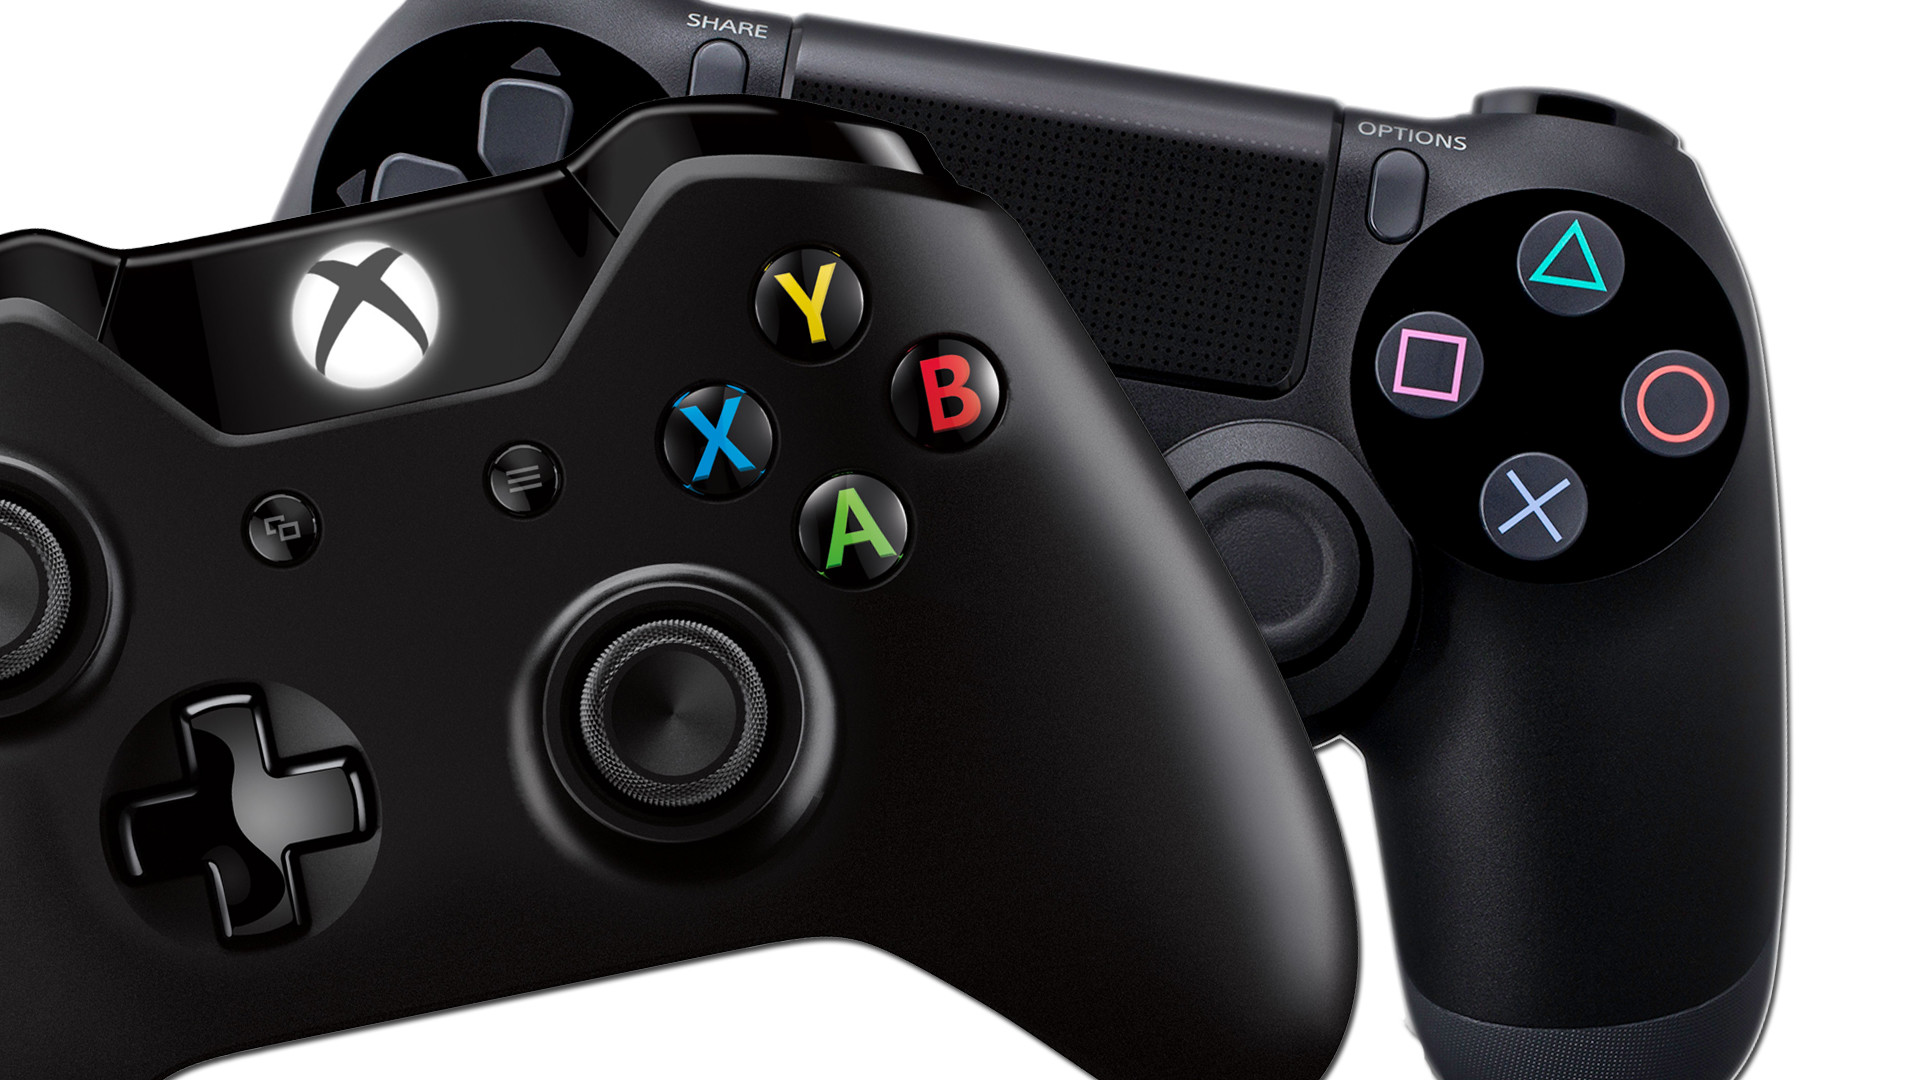 Cyber Monday: The best official Xbox One and PS4 controller deals for $40 /  £40 or less | GamesRadar+